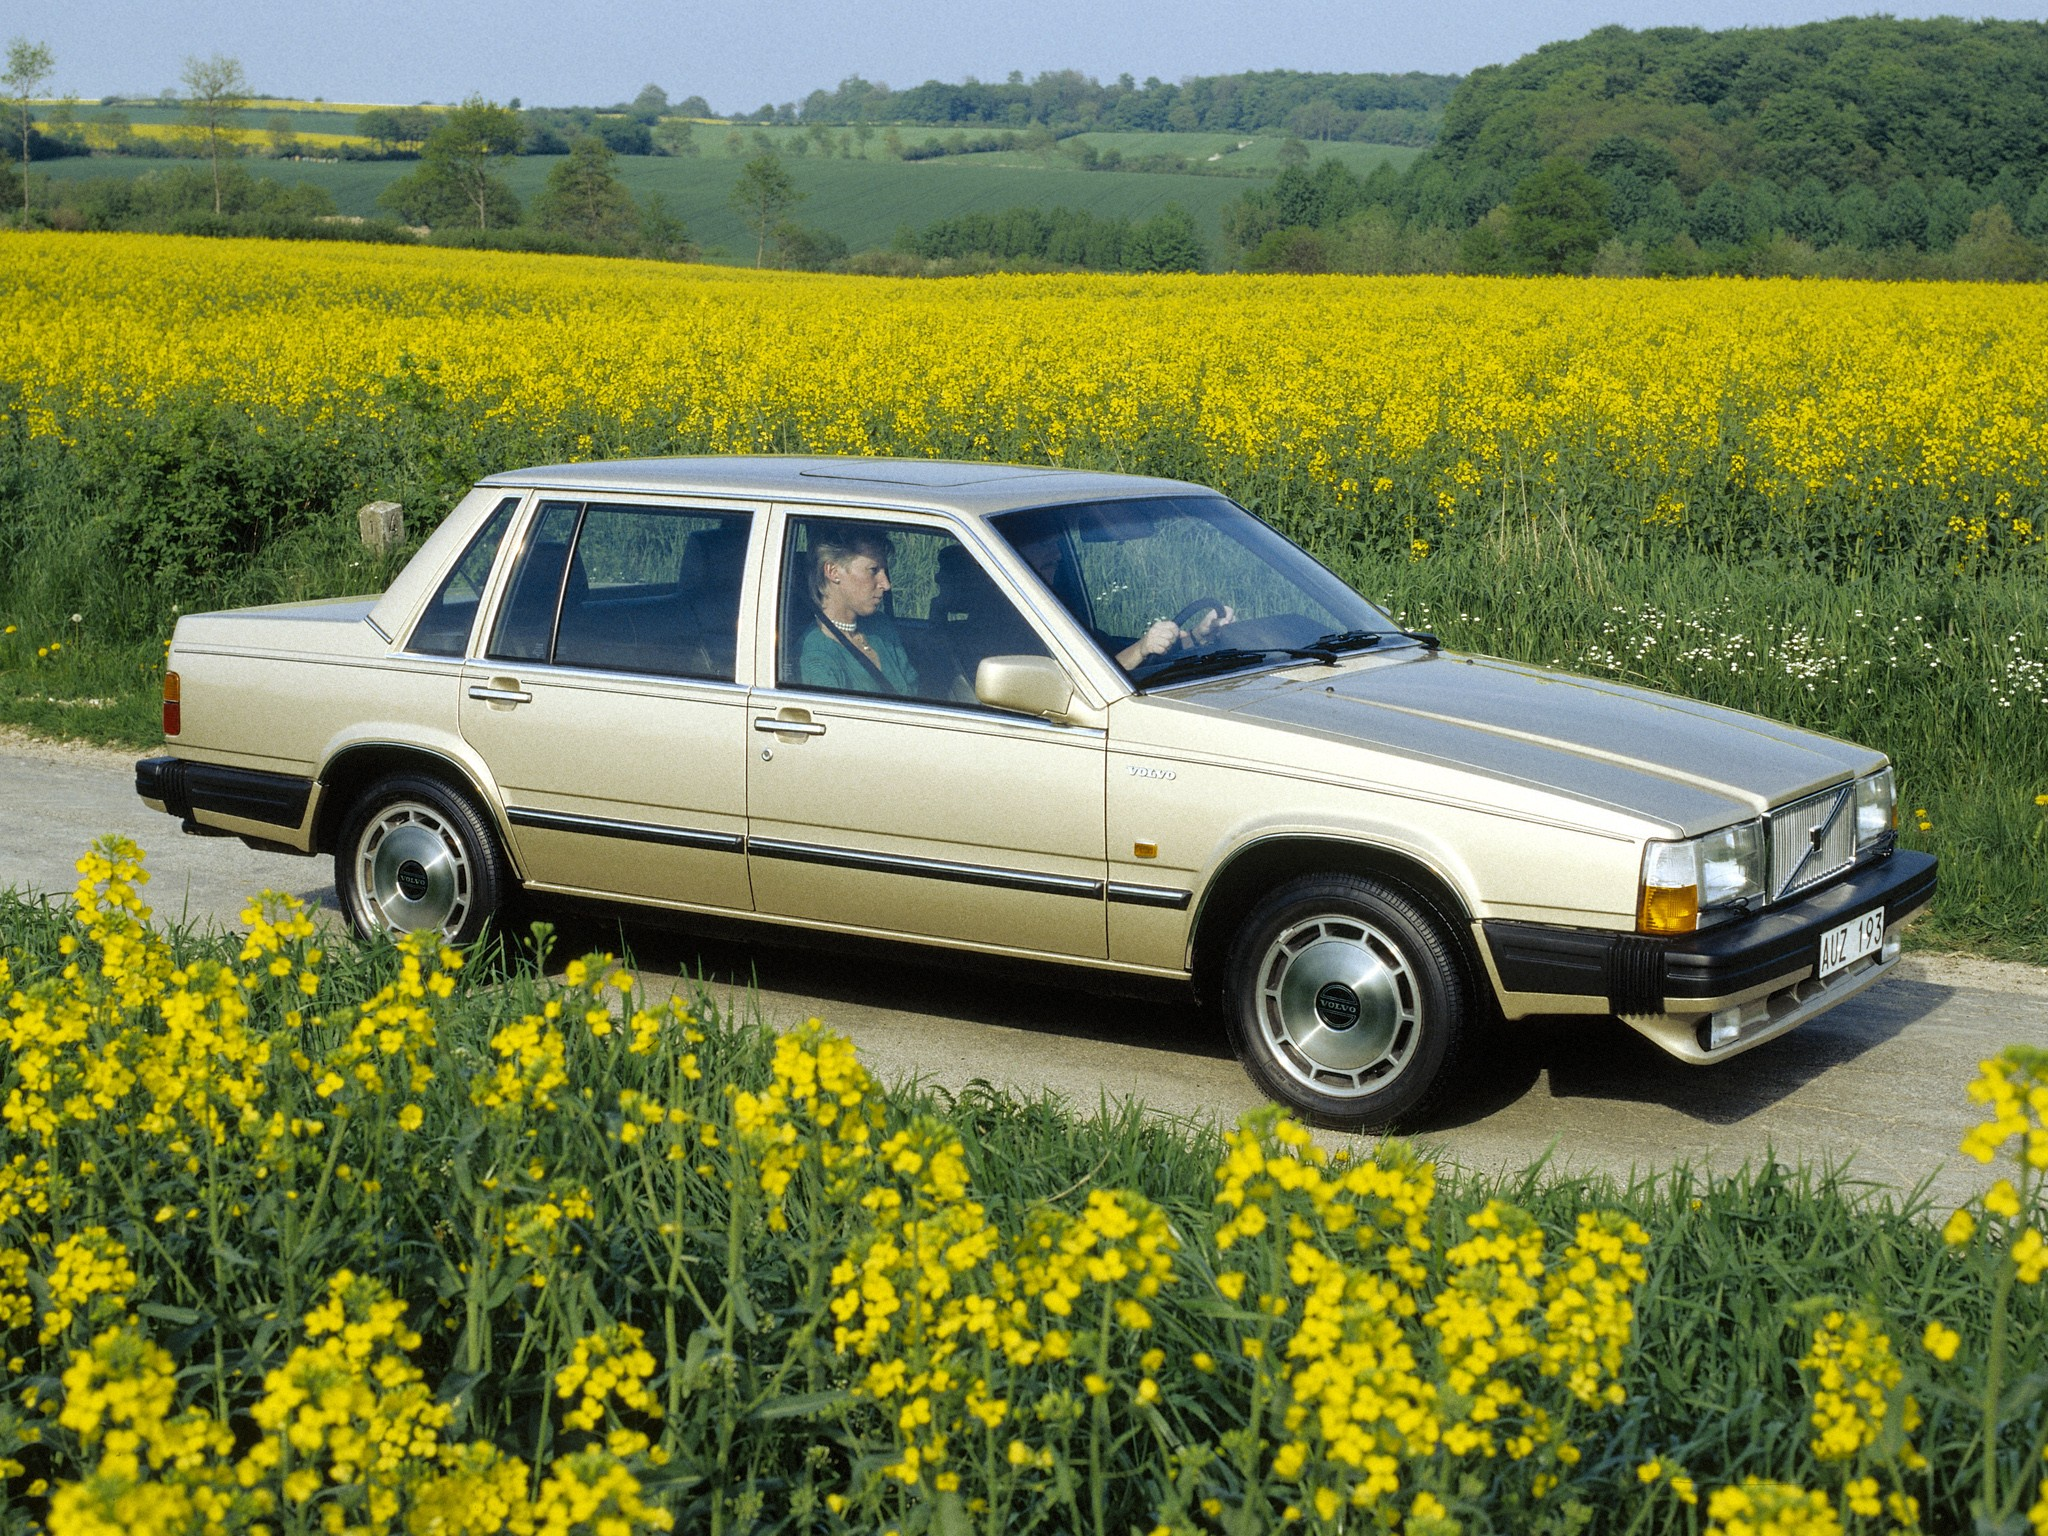 VOLVO 760 specs & photos - 1982, 1983, 1984, 1985, 1986, 1987, 1988, 1989, 1990 - autoevolution